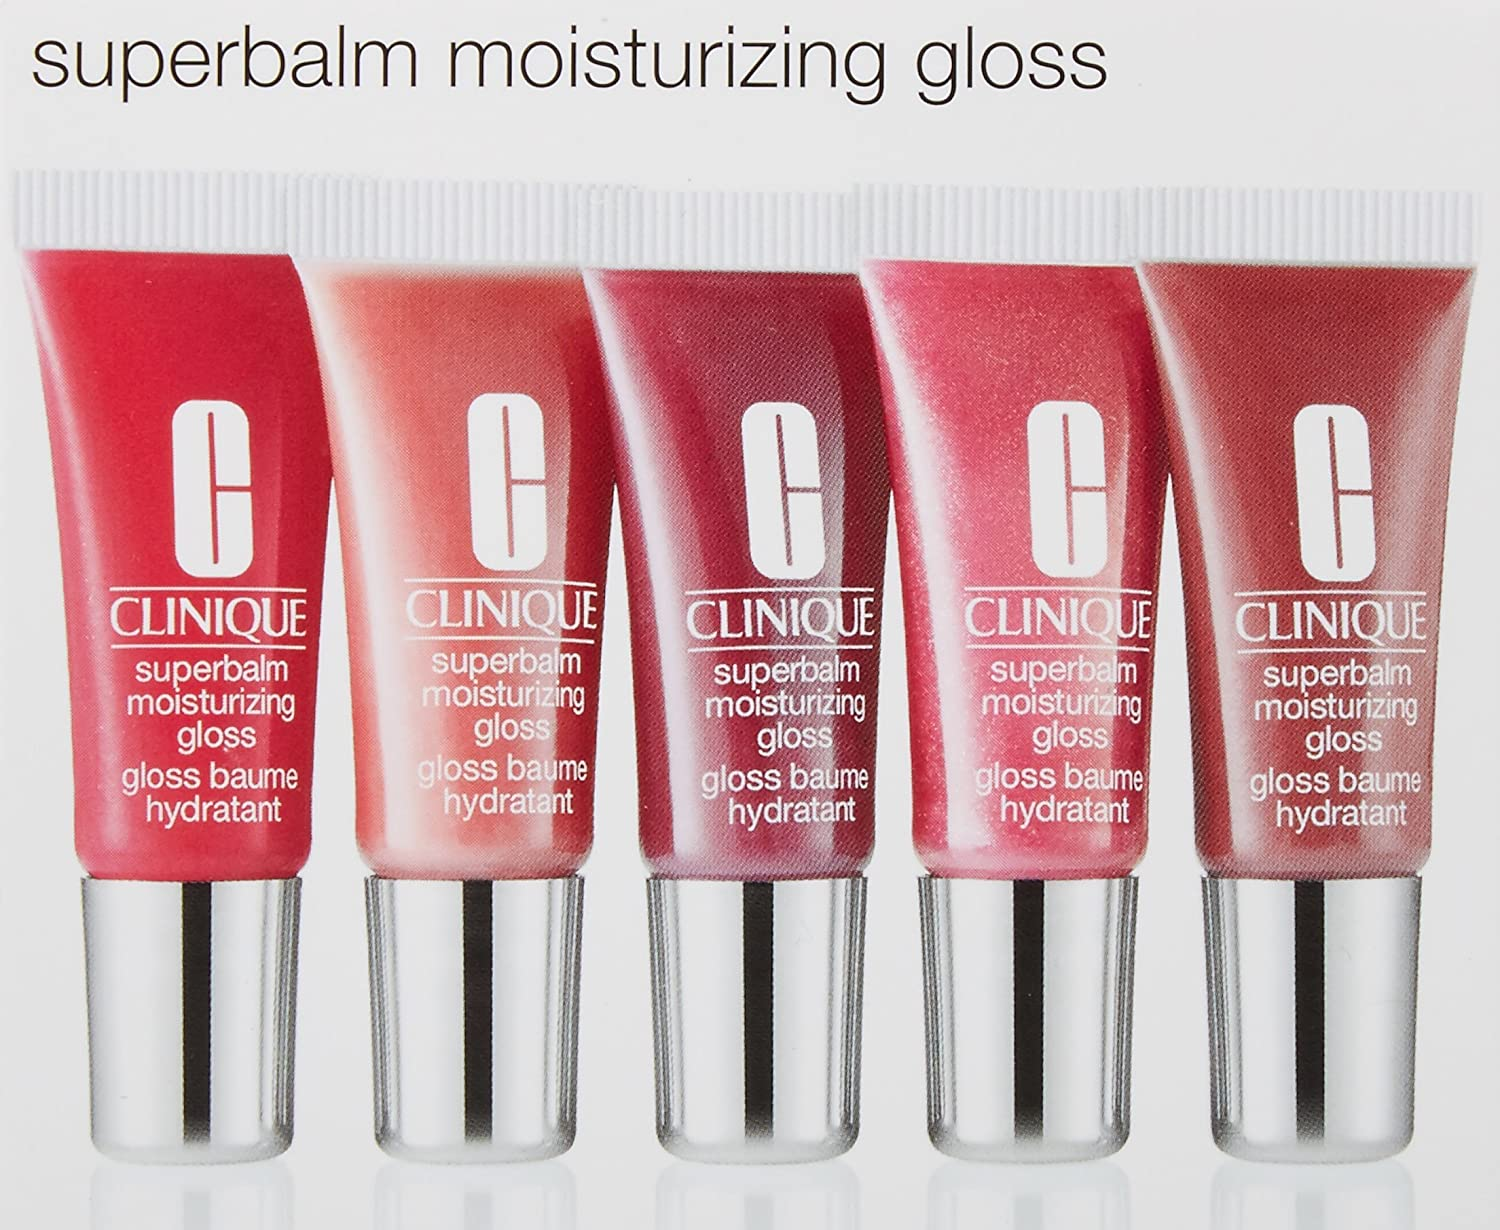 Superbalm Moisturizing Gloss by Clinique #21